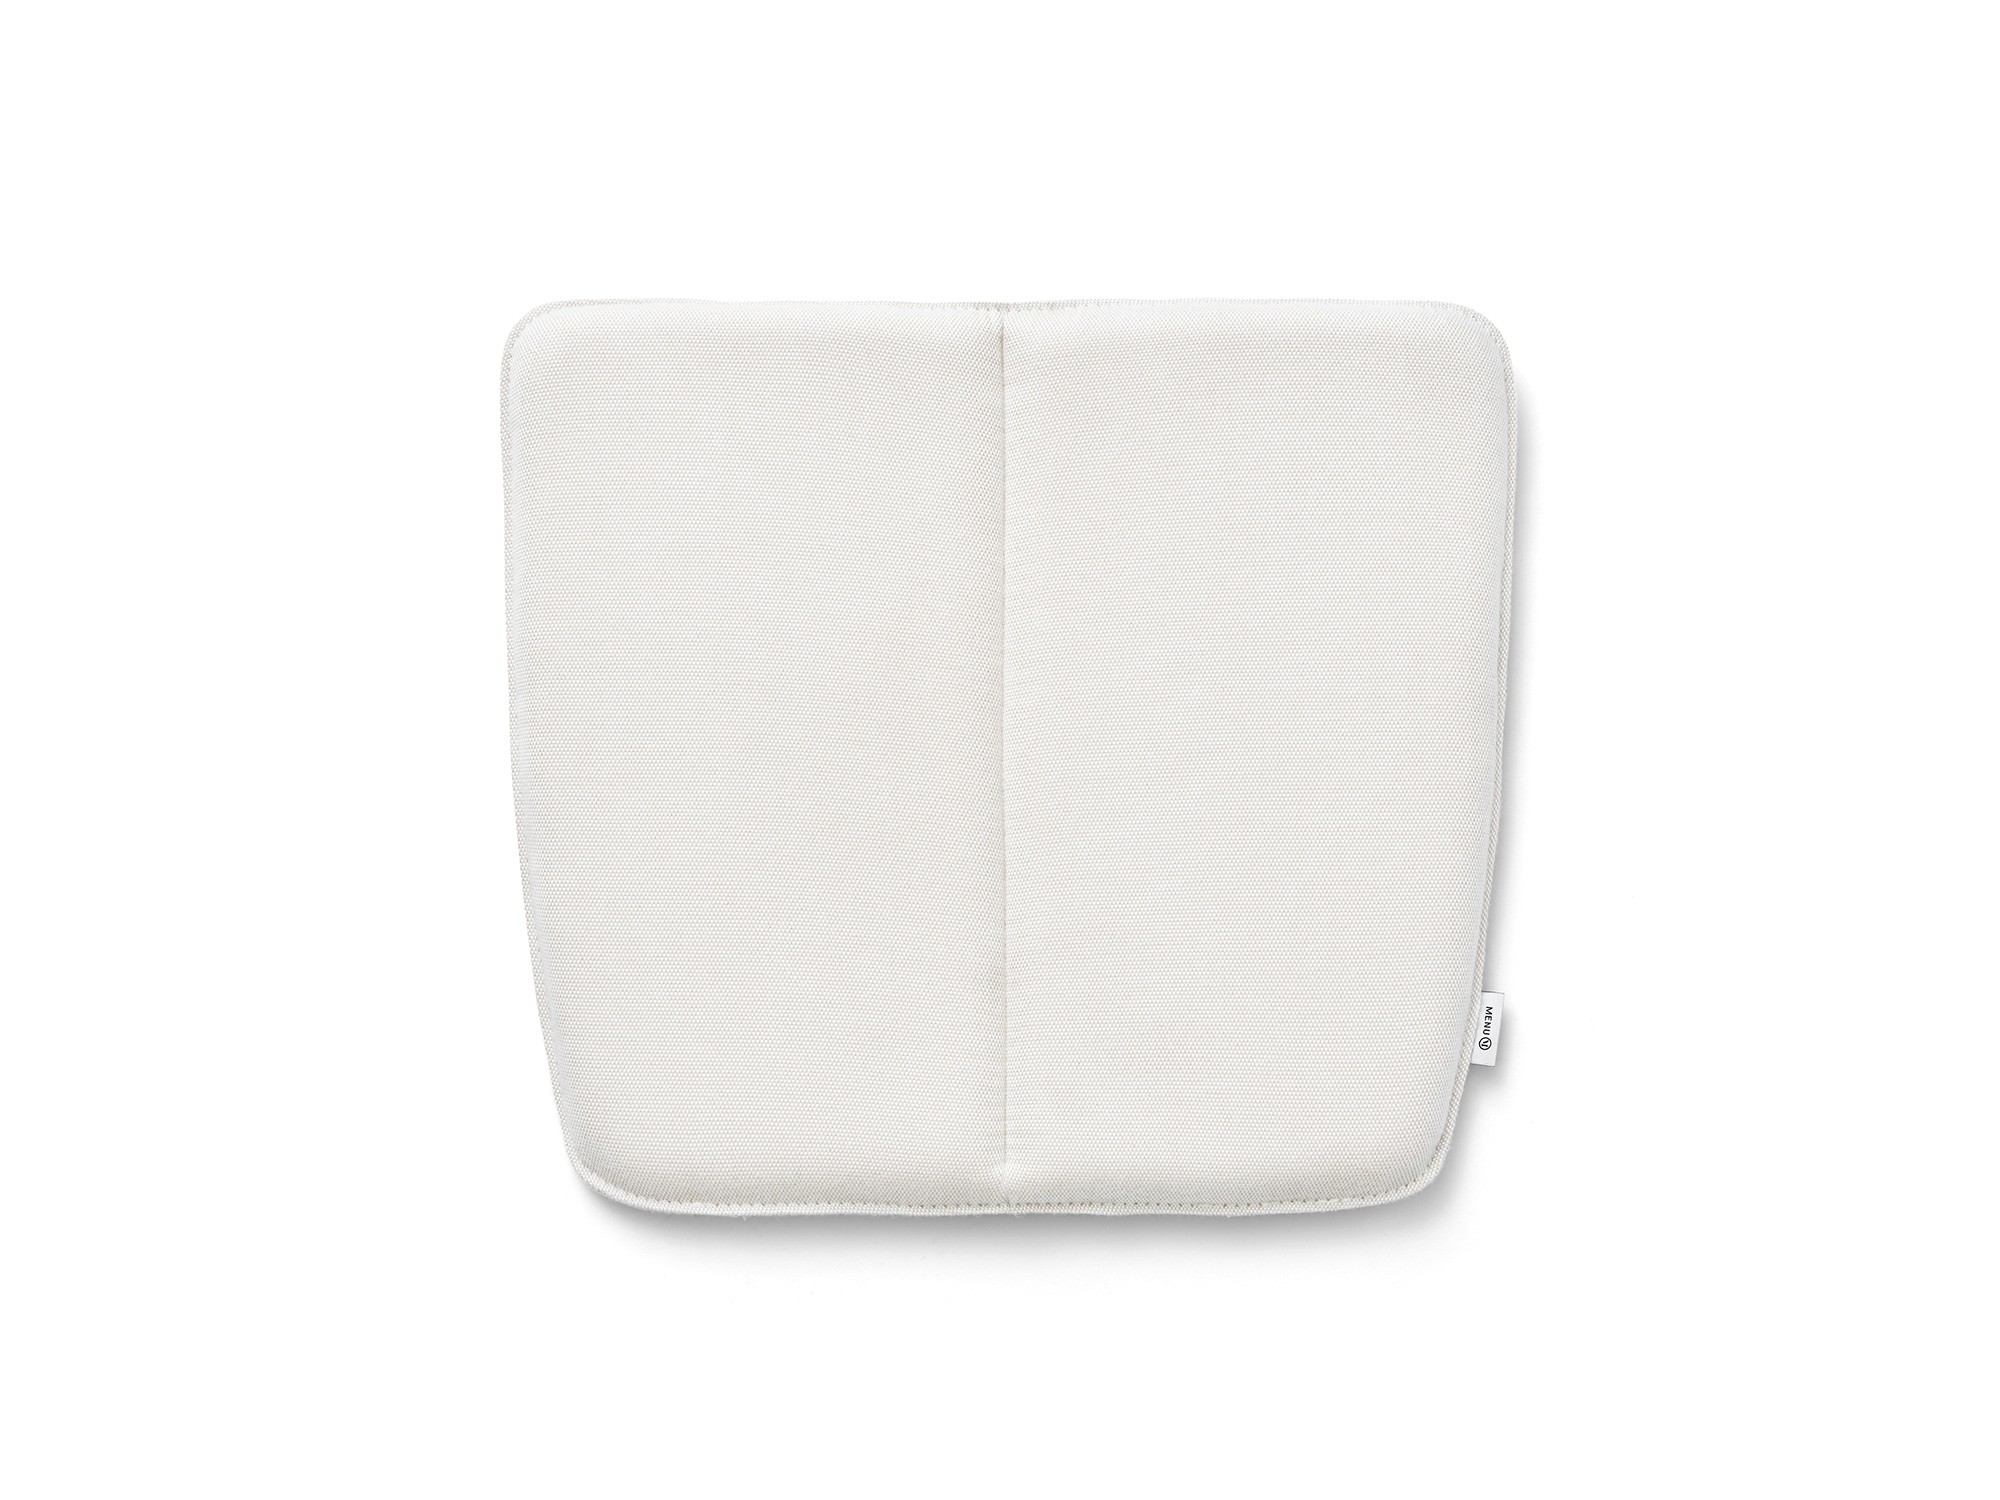 Menu WM String Cushion Outdoor Lounge Ivory White Sitzauflage